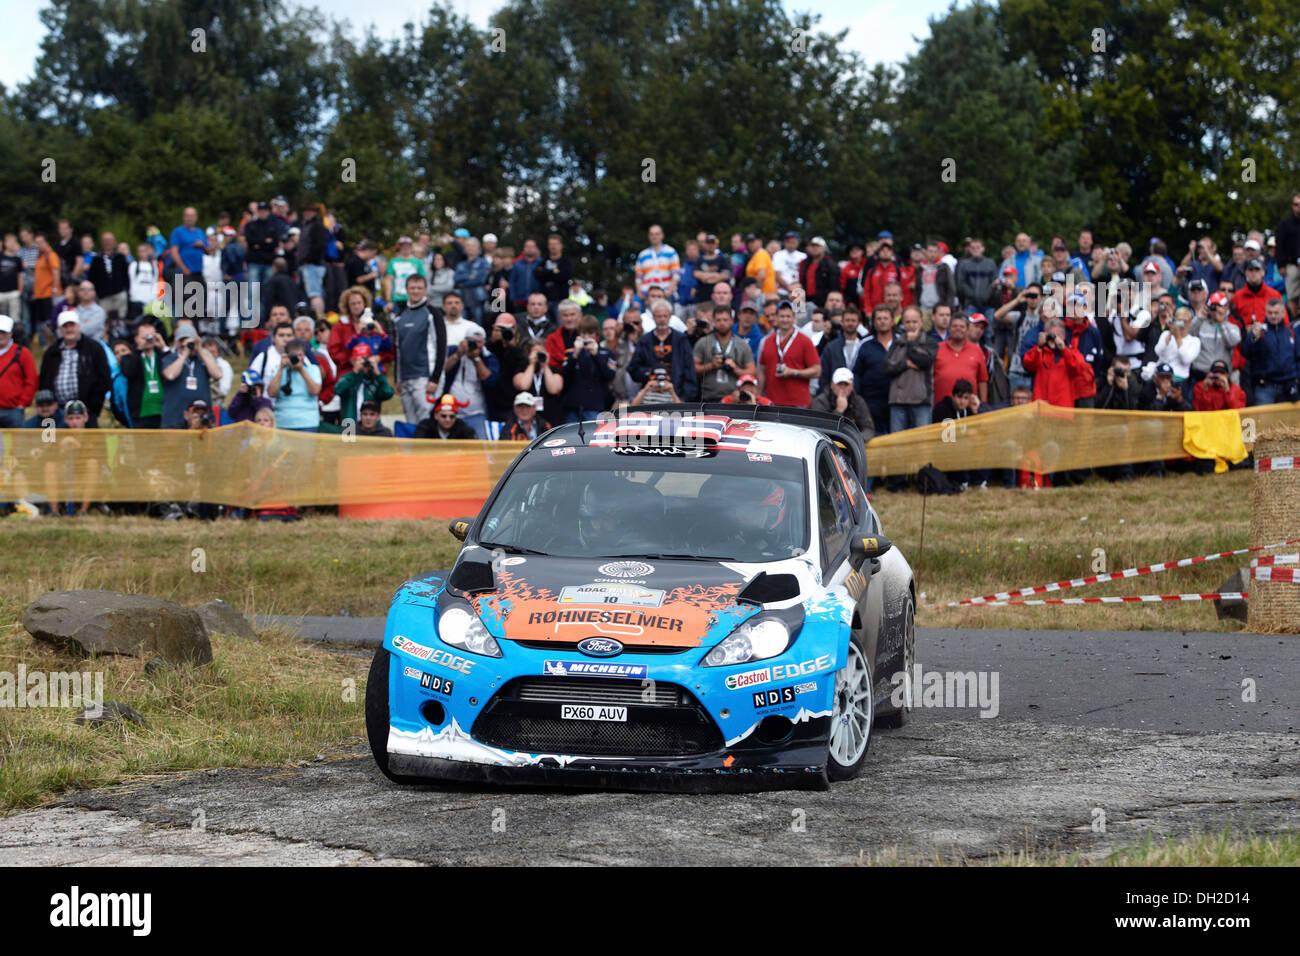 ADAC Rally Deutschland, special stage, Baumholder military training area, Mads Oestberg, NOR, and co-driver Jonas Andersson, SWE - Stock Image